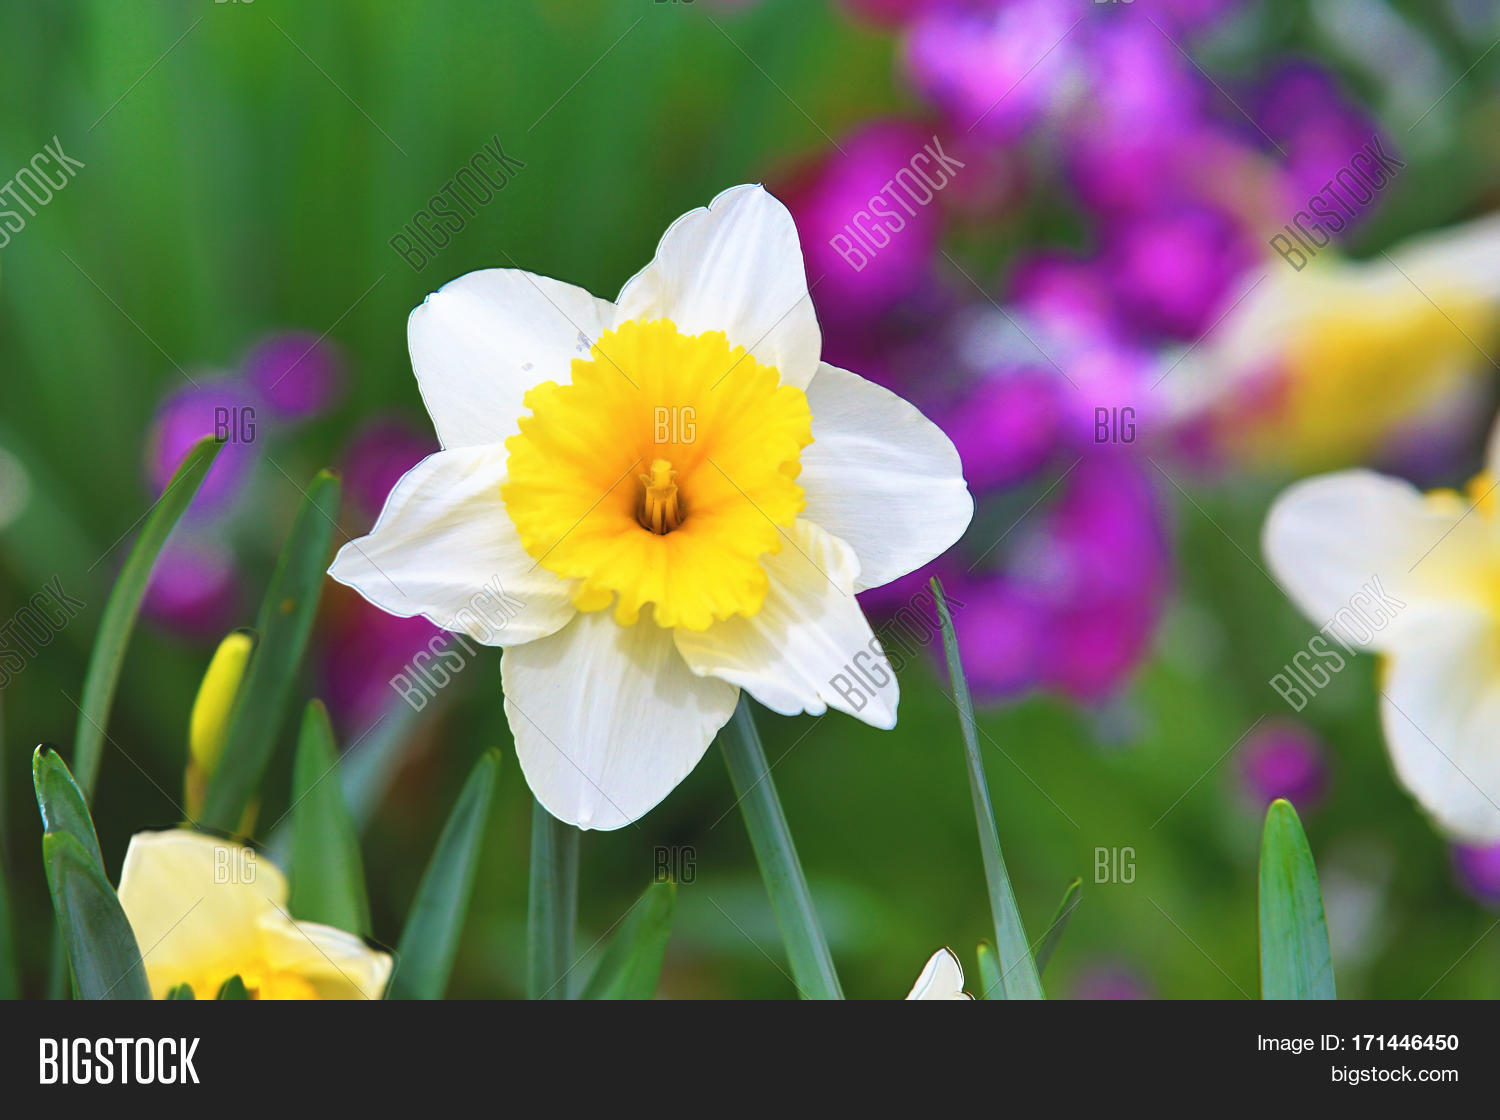 Beautiful scenery image photo free trial bigstock beautiful scenery of daffodil flowerswhite with yellow flowers blooming in the garden in spring izmirmasajfo